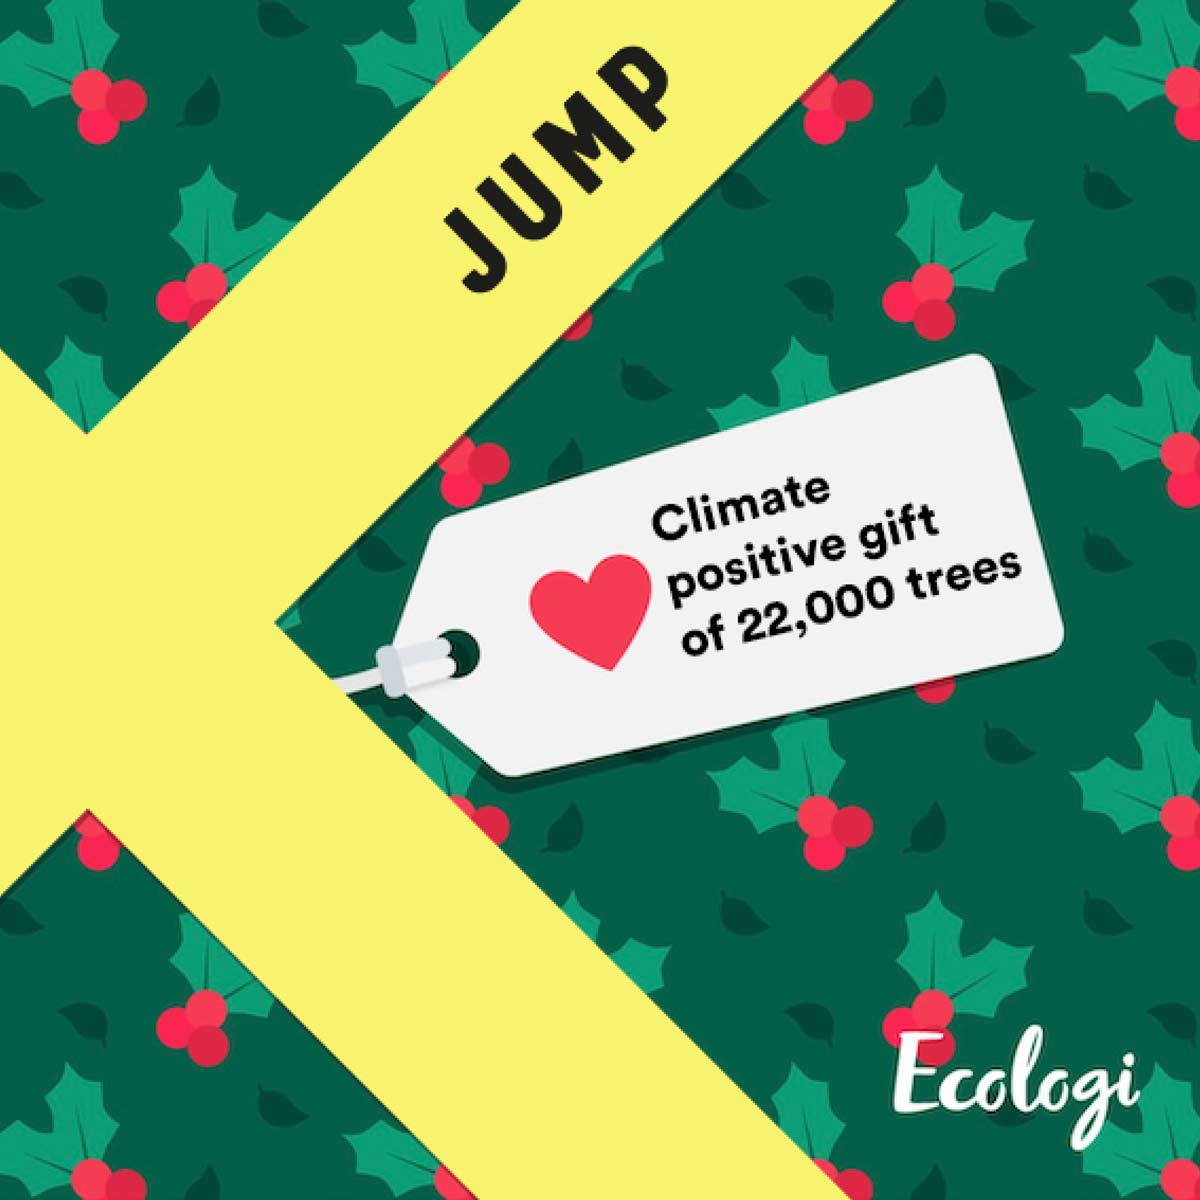 This Christmas we've planted 22,000 trees and we want to say a great big thank you.